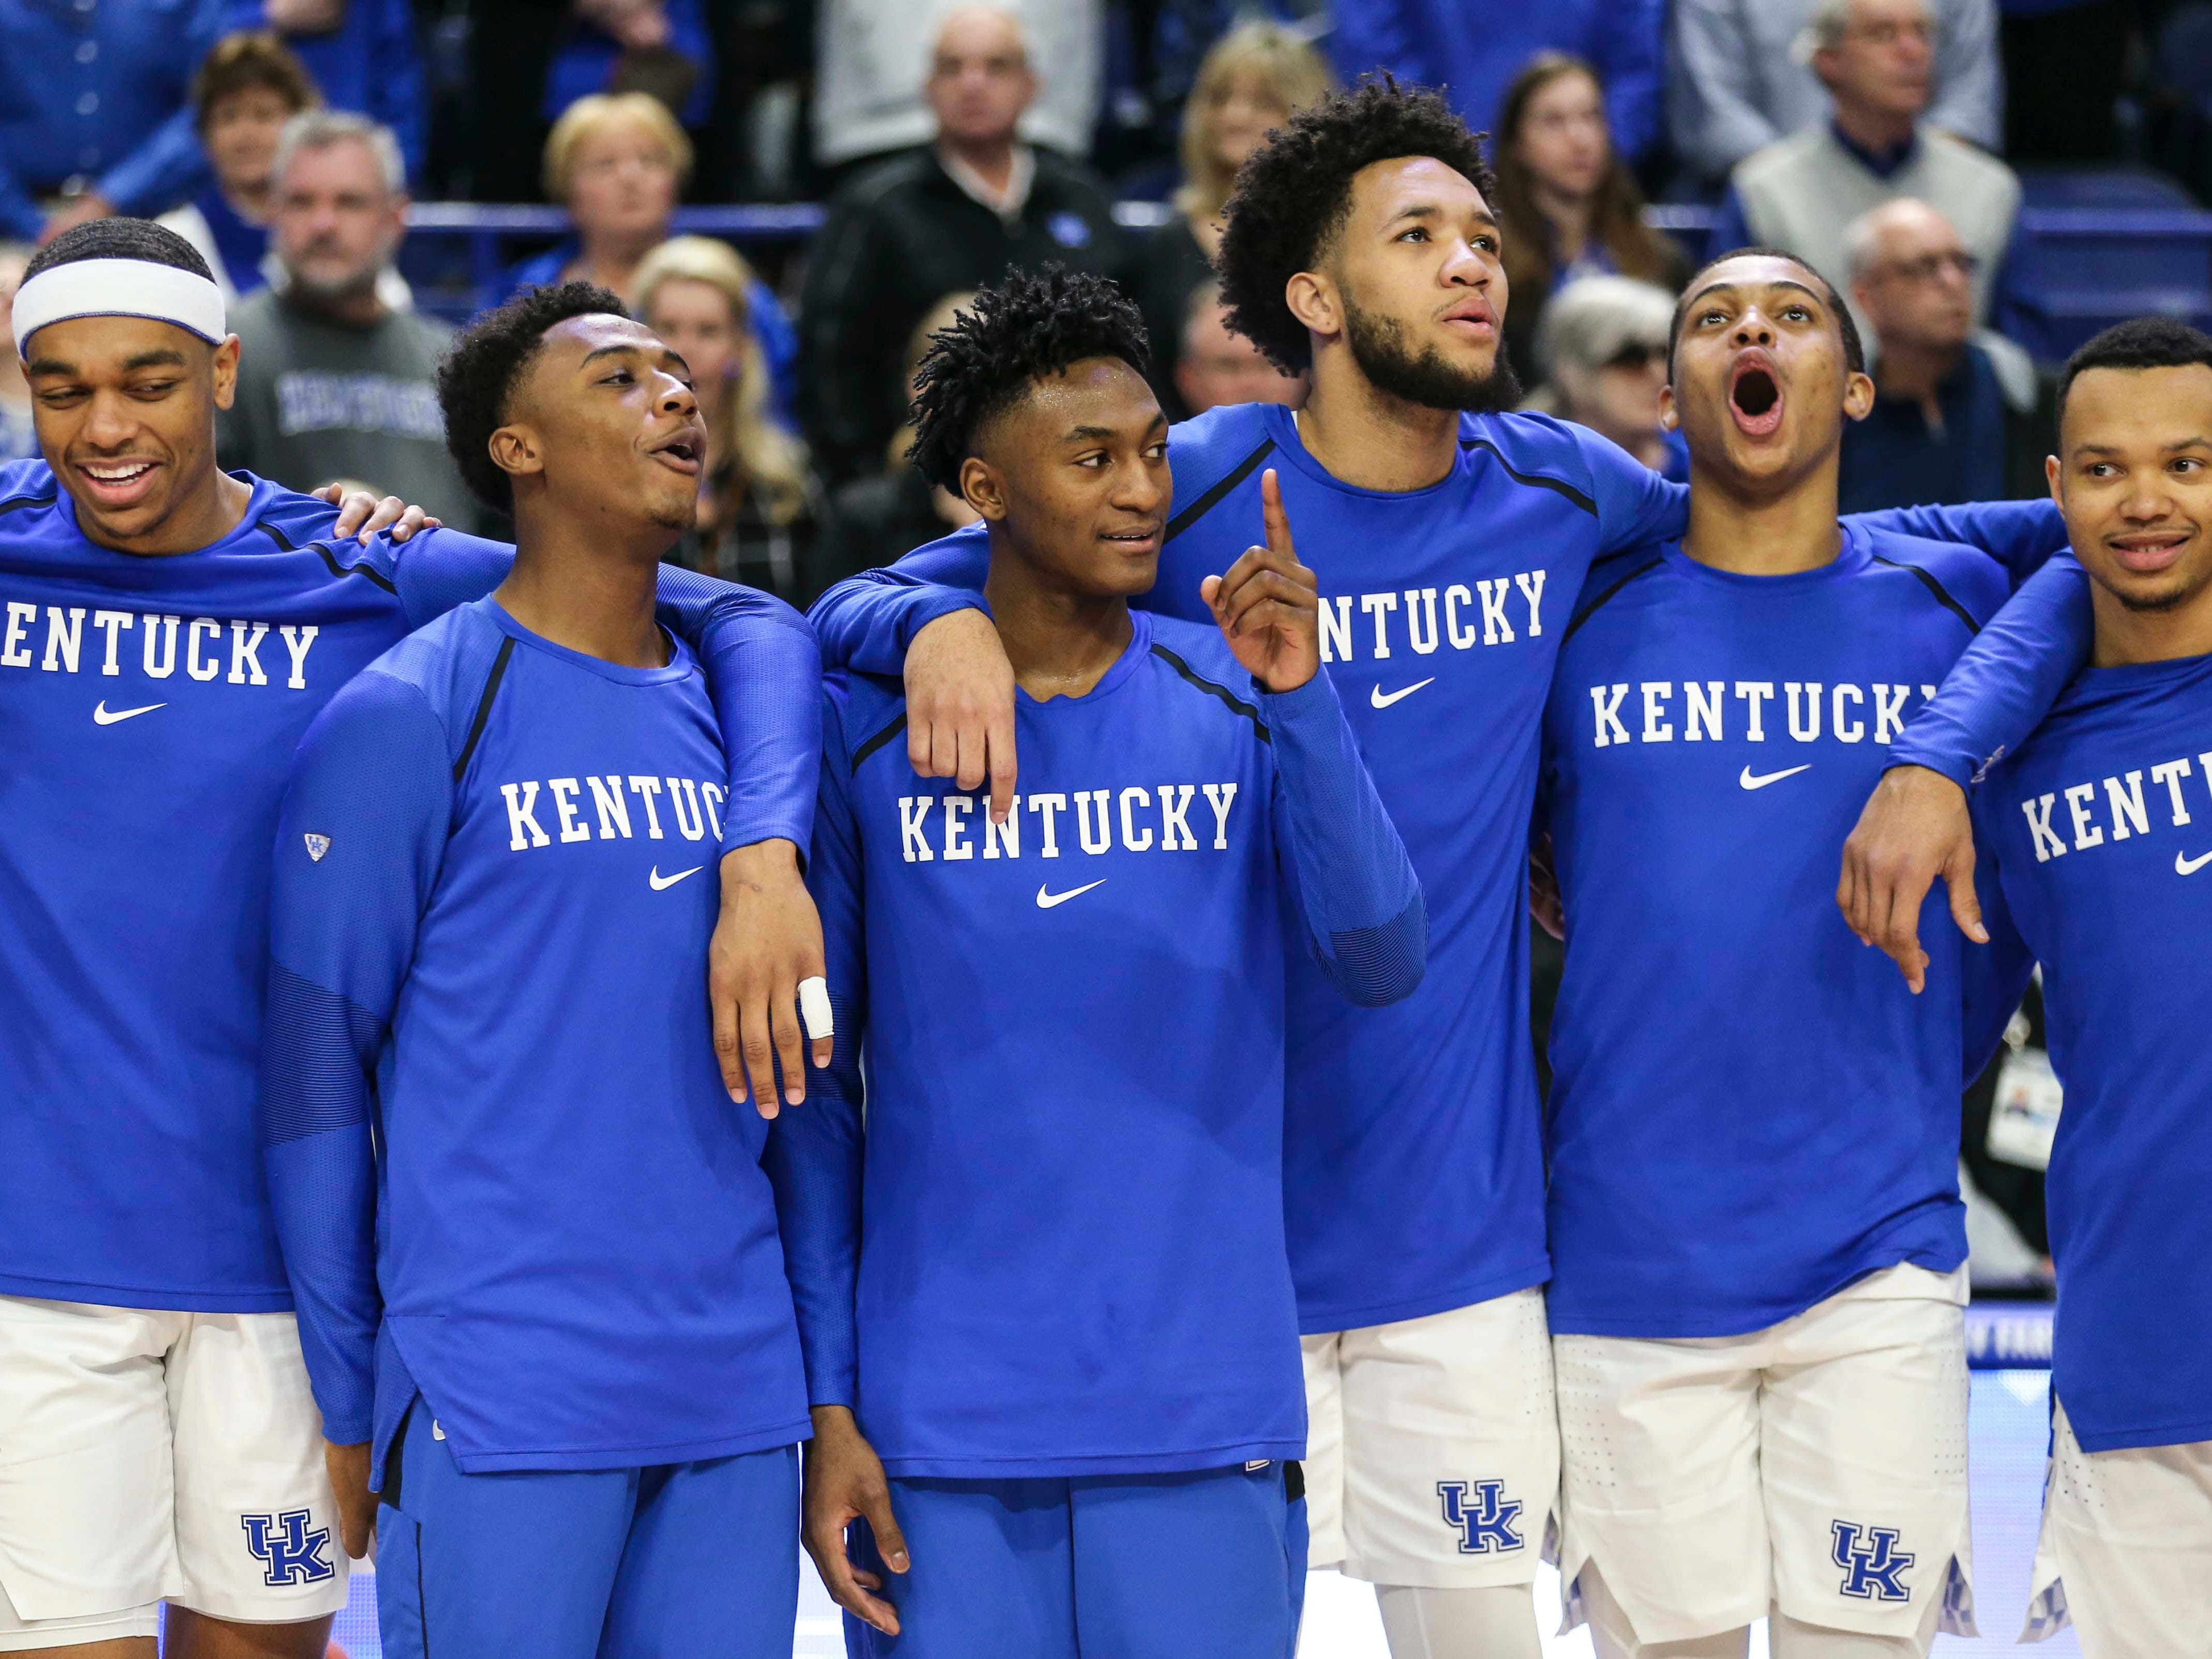 Kentucky's Keldon Johnson sings along during 'My Old Kentucky Home' on  Senior Day before the game against Florida. March 9, 2019